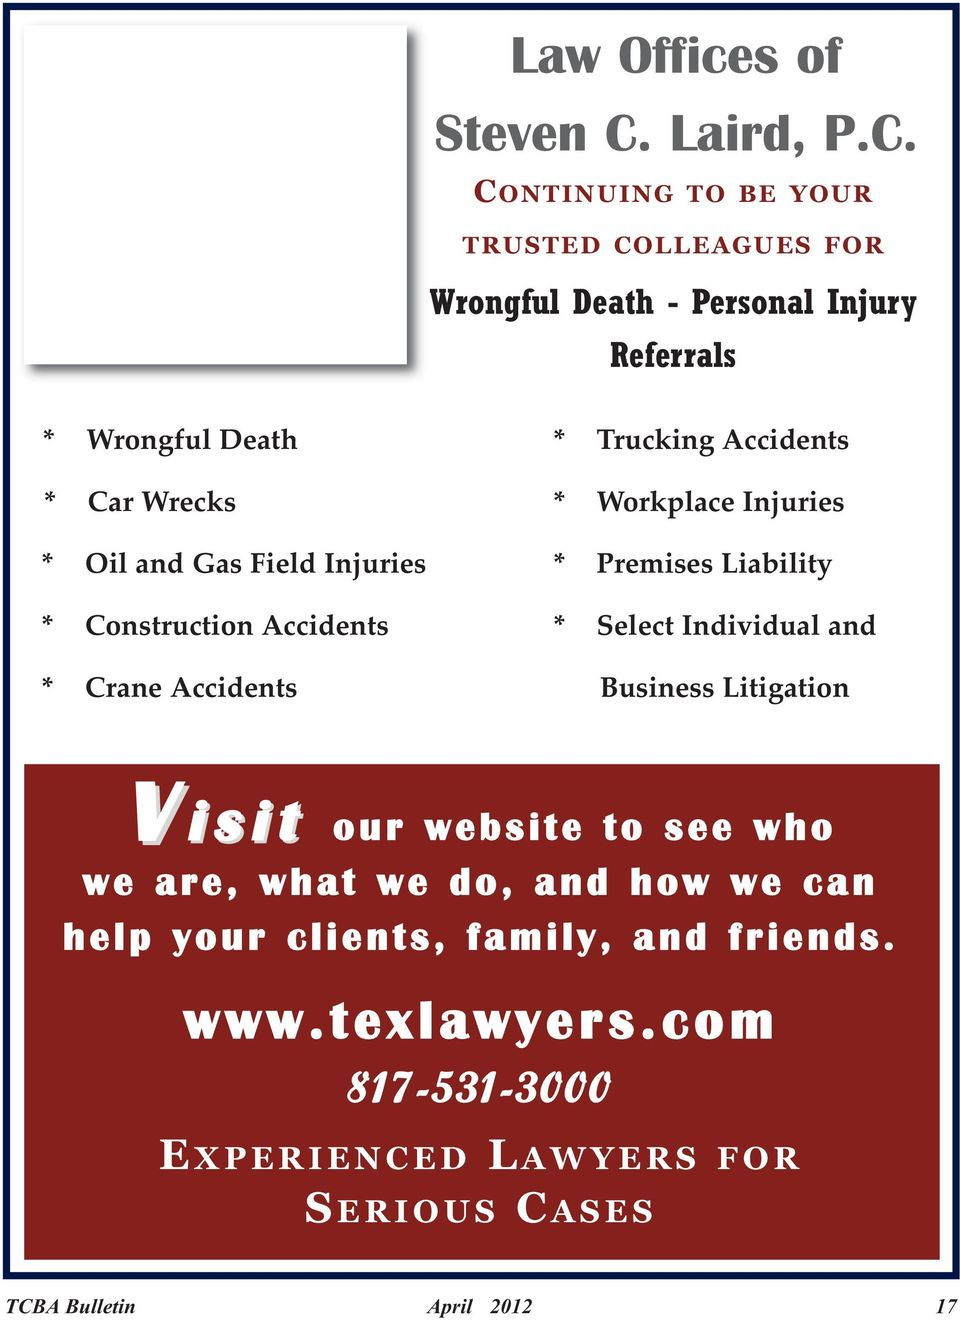 CONTINUING TO BE YOUR TRUSTED COLLEAGUES FOR Wrongful Death - Personal Injury Referrals * Wrongful Death * Car Wrecks * Oil and Gas